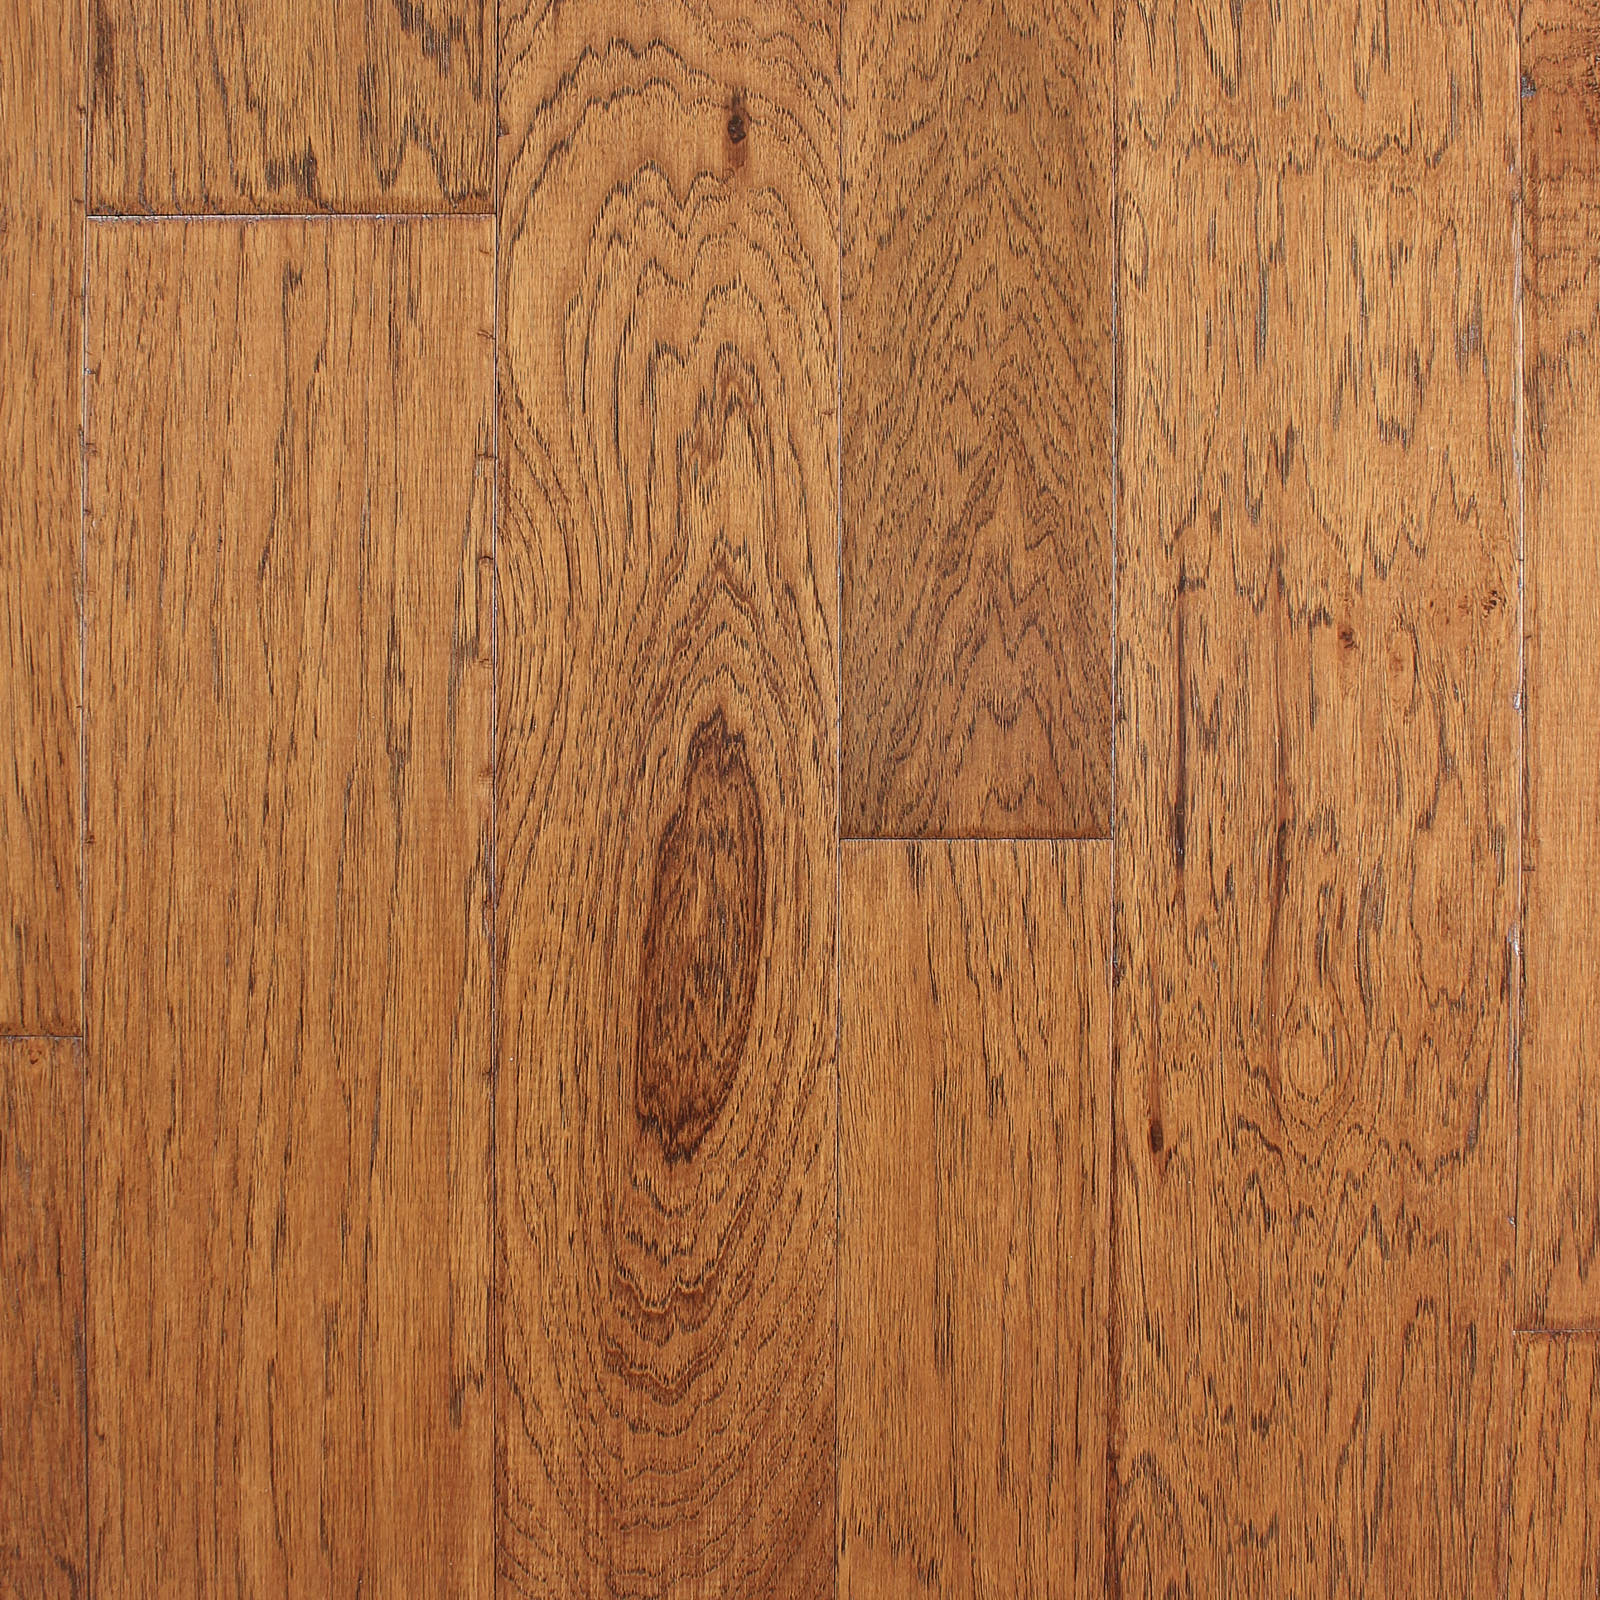 Stony Brook Cavern Engineered Hardwood Flooring